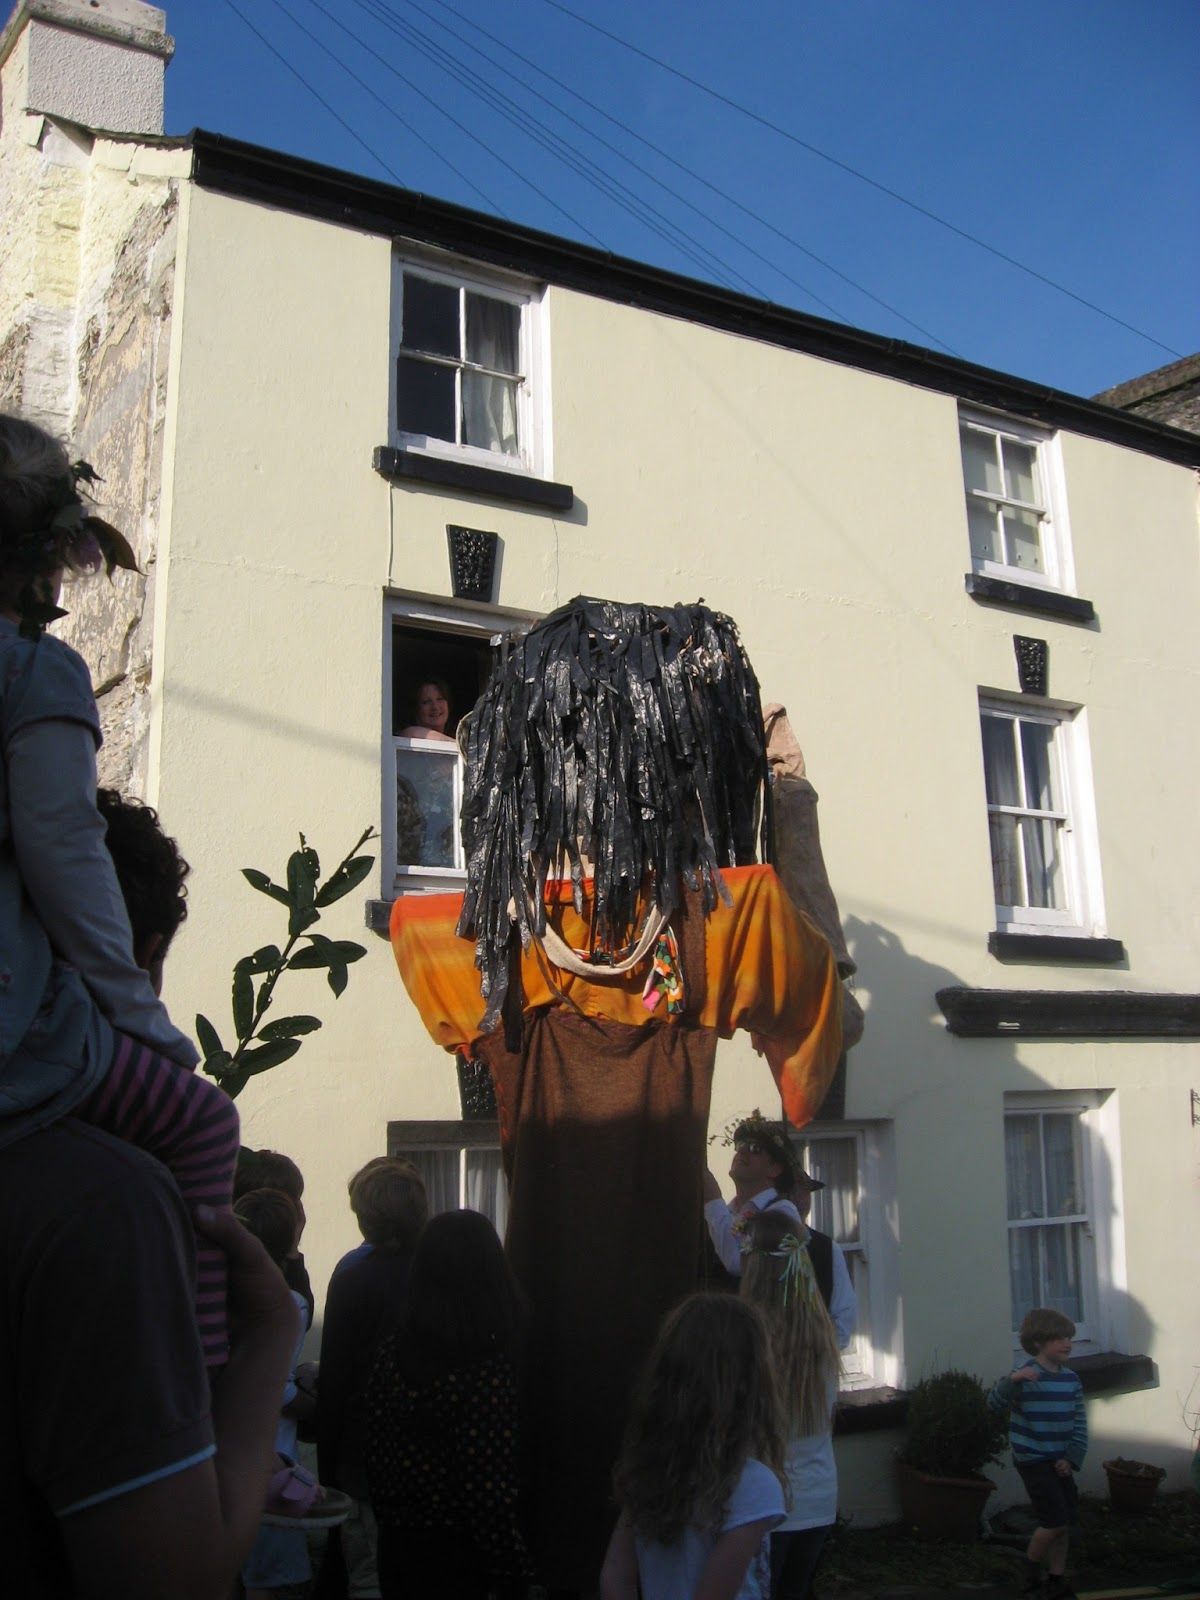 And Yes The Calstock Giant Does Knock On Cottages First Floor Windows To Bring People Out Play Home